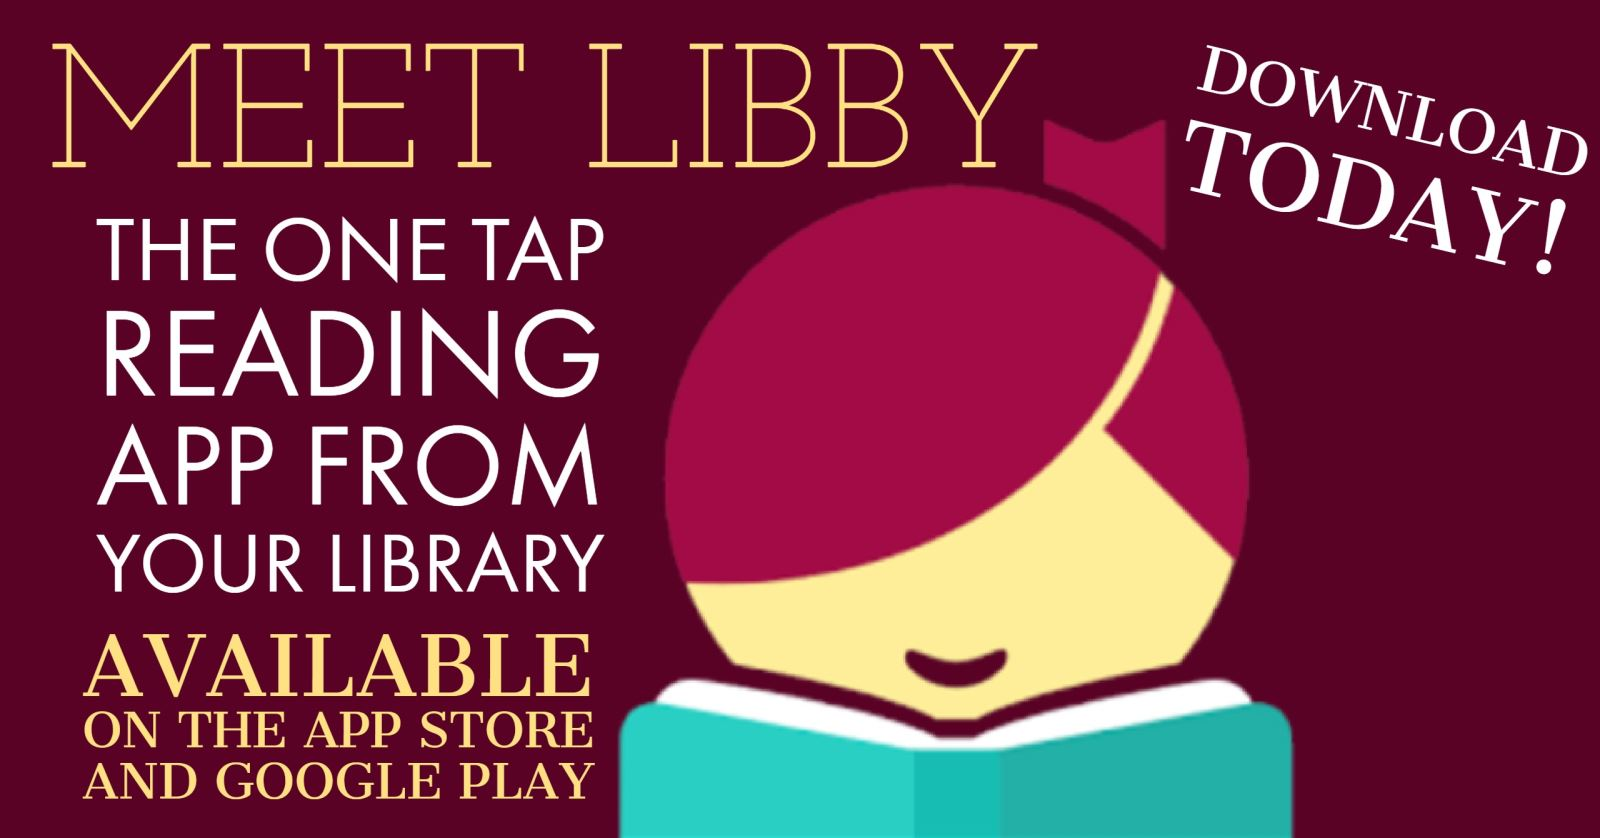 Meet Libby.  The one tap reading app from your library.  Available on the app sore and google play store.  Download today!